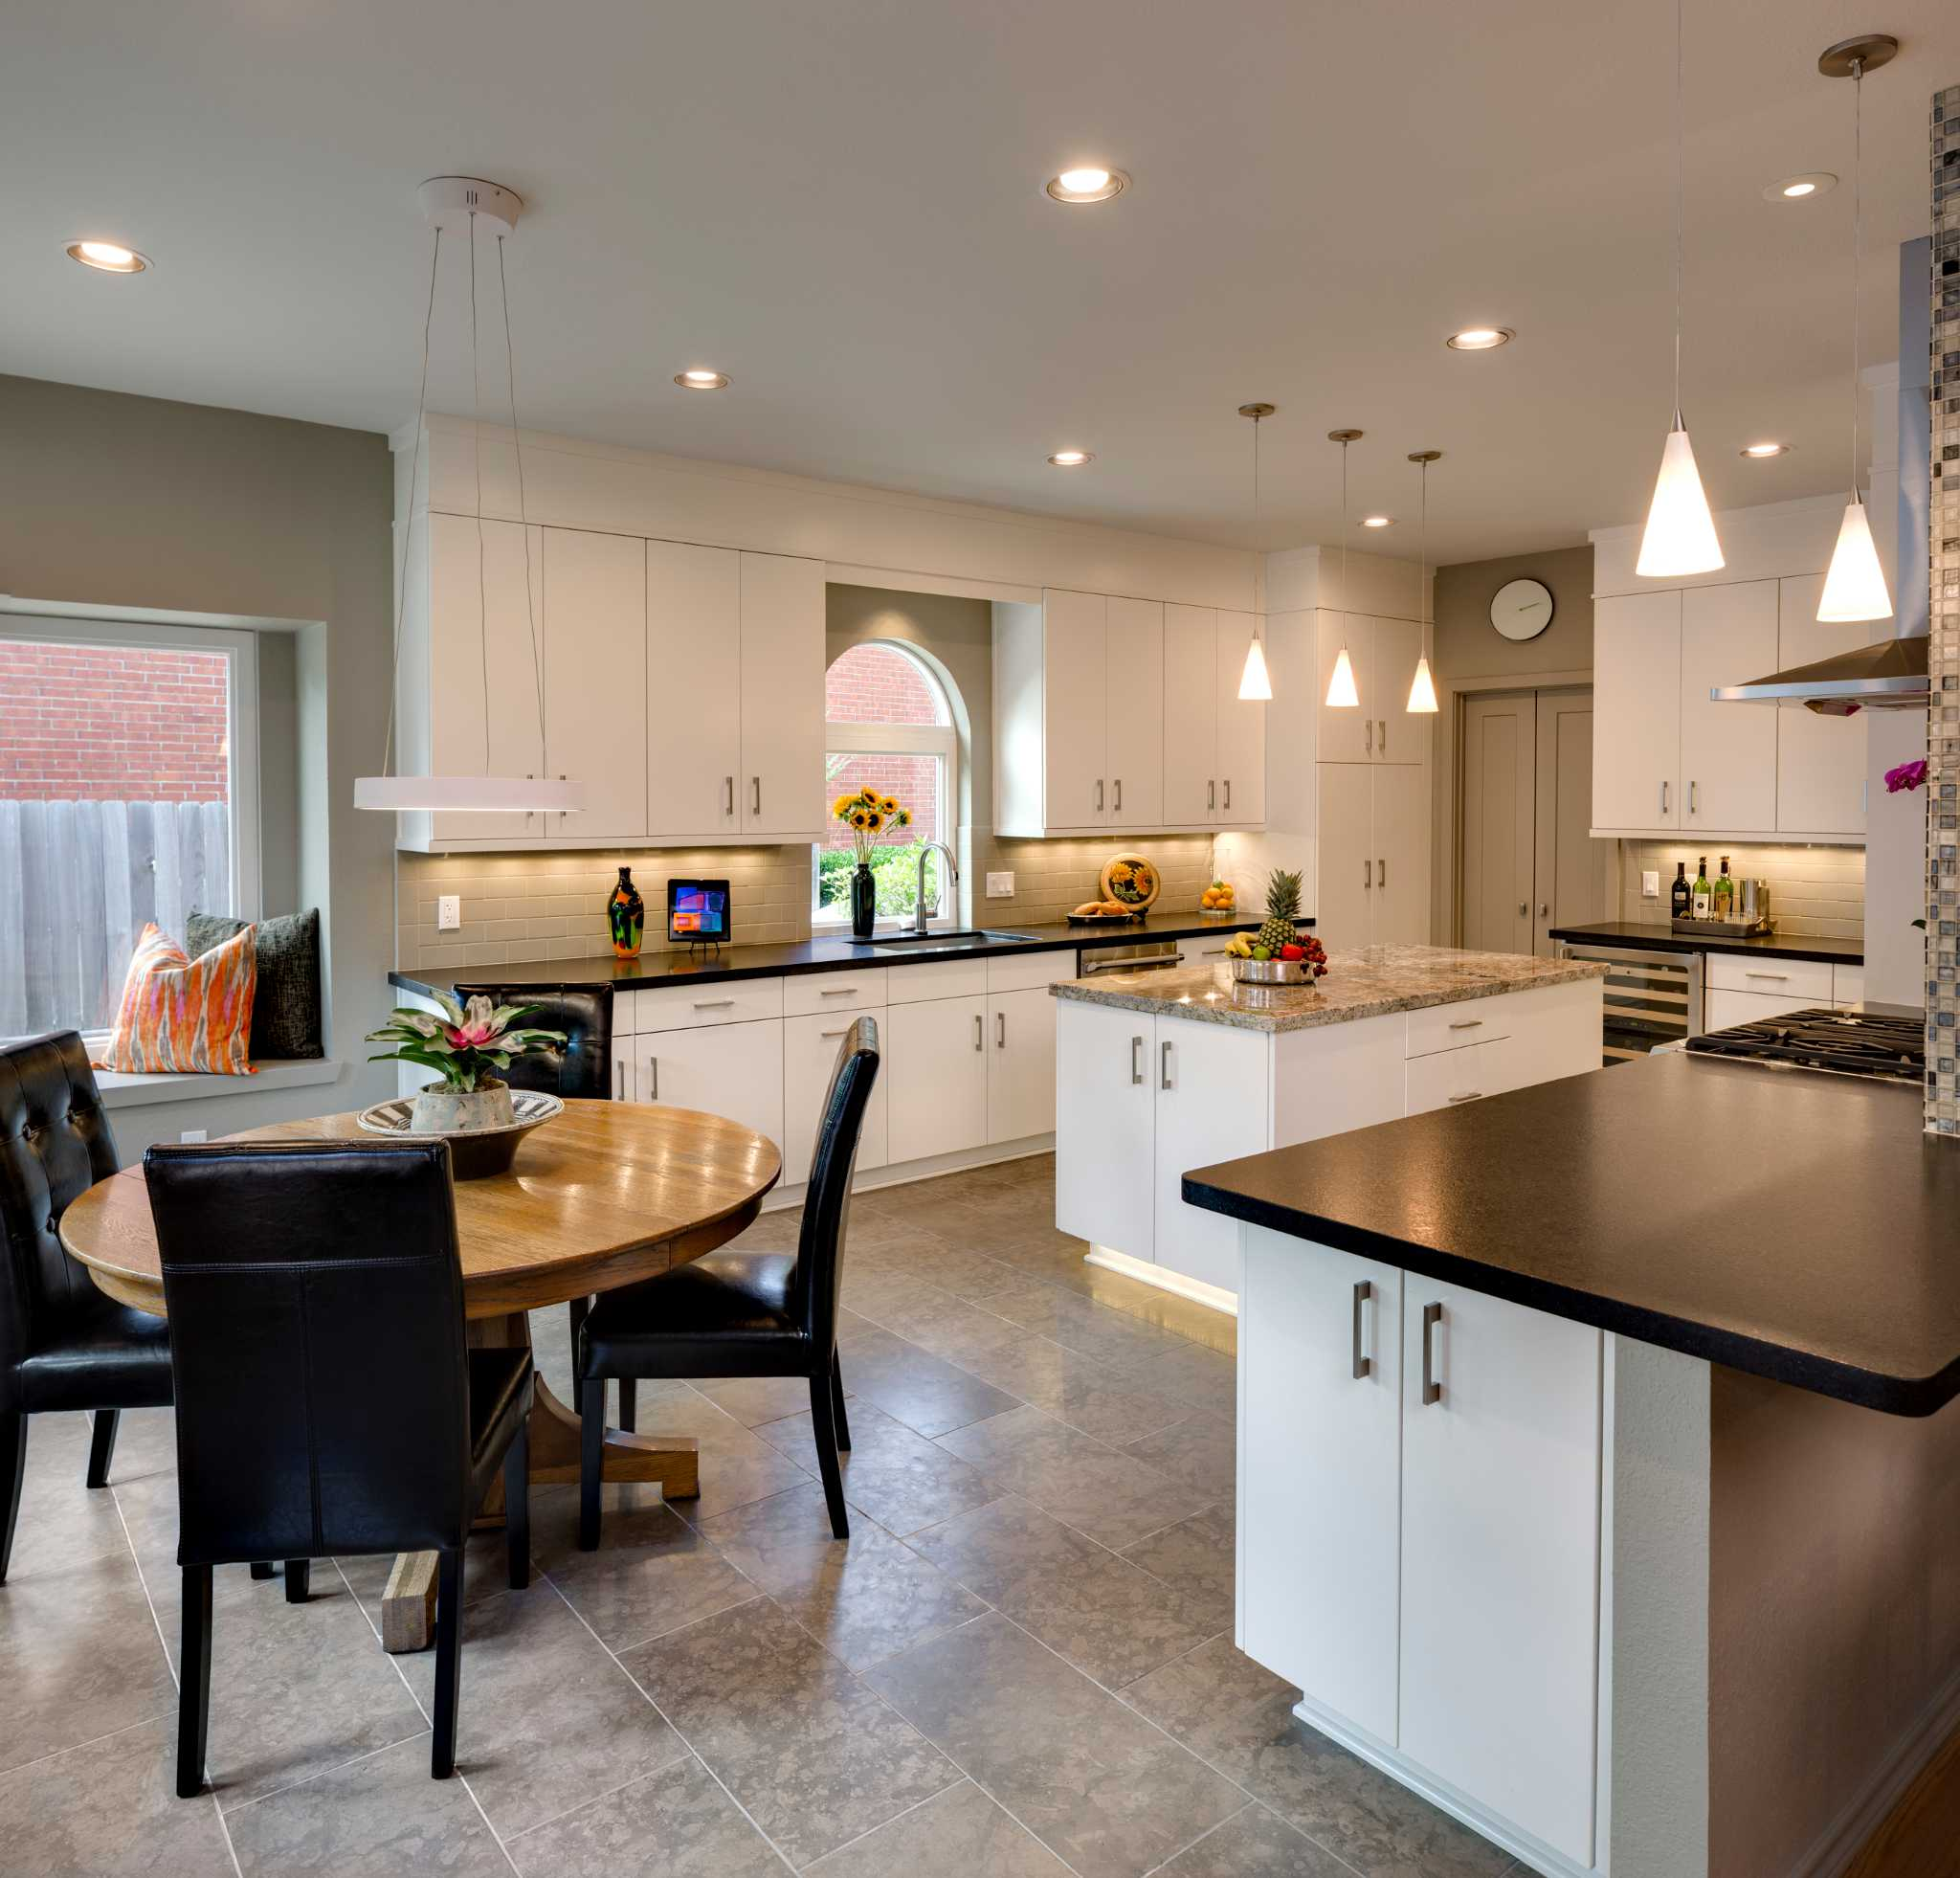 time for an upgrade: kitchen, bath are top remodeling projects